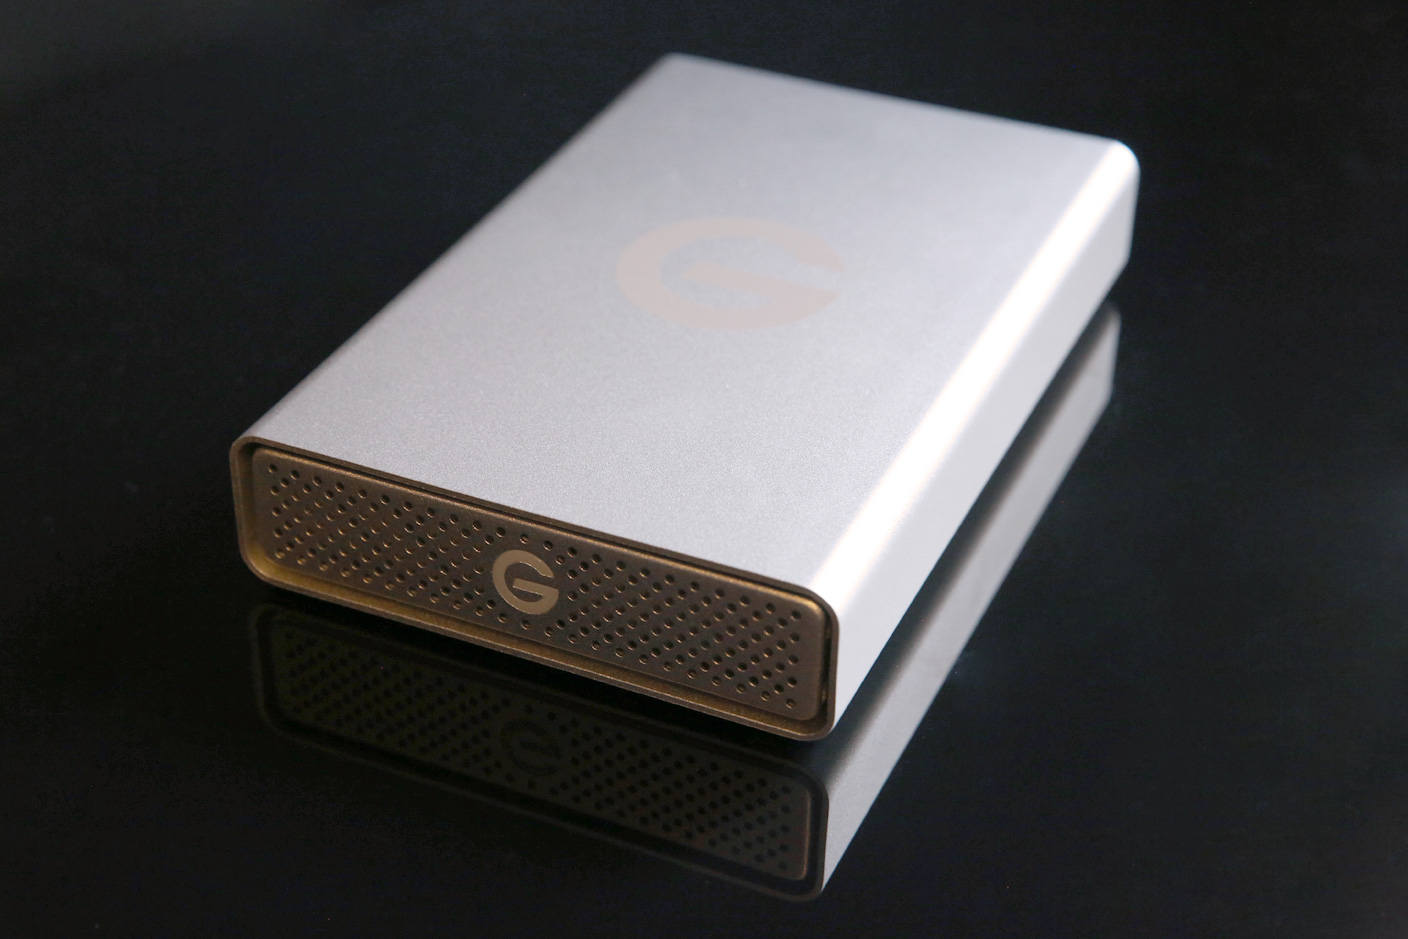 Buying an External Drive: What You Need to Know